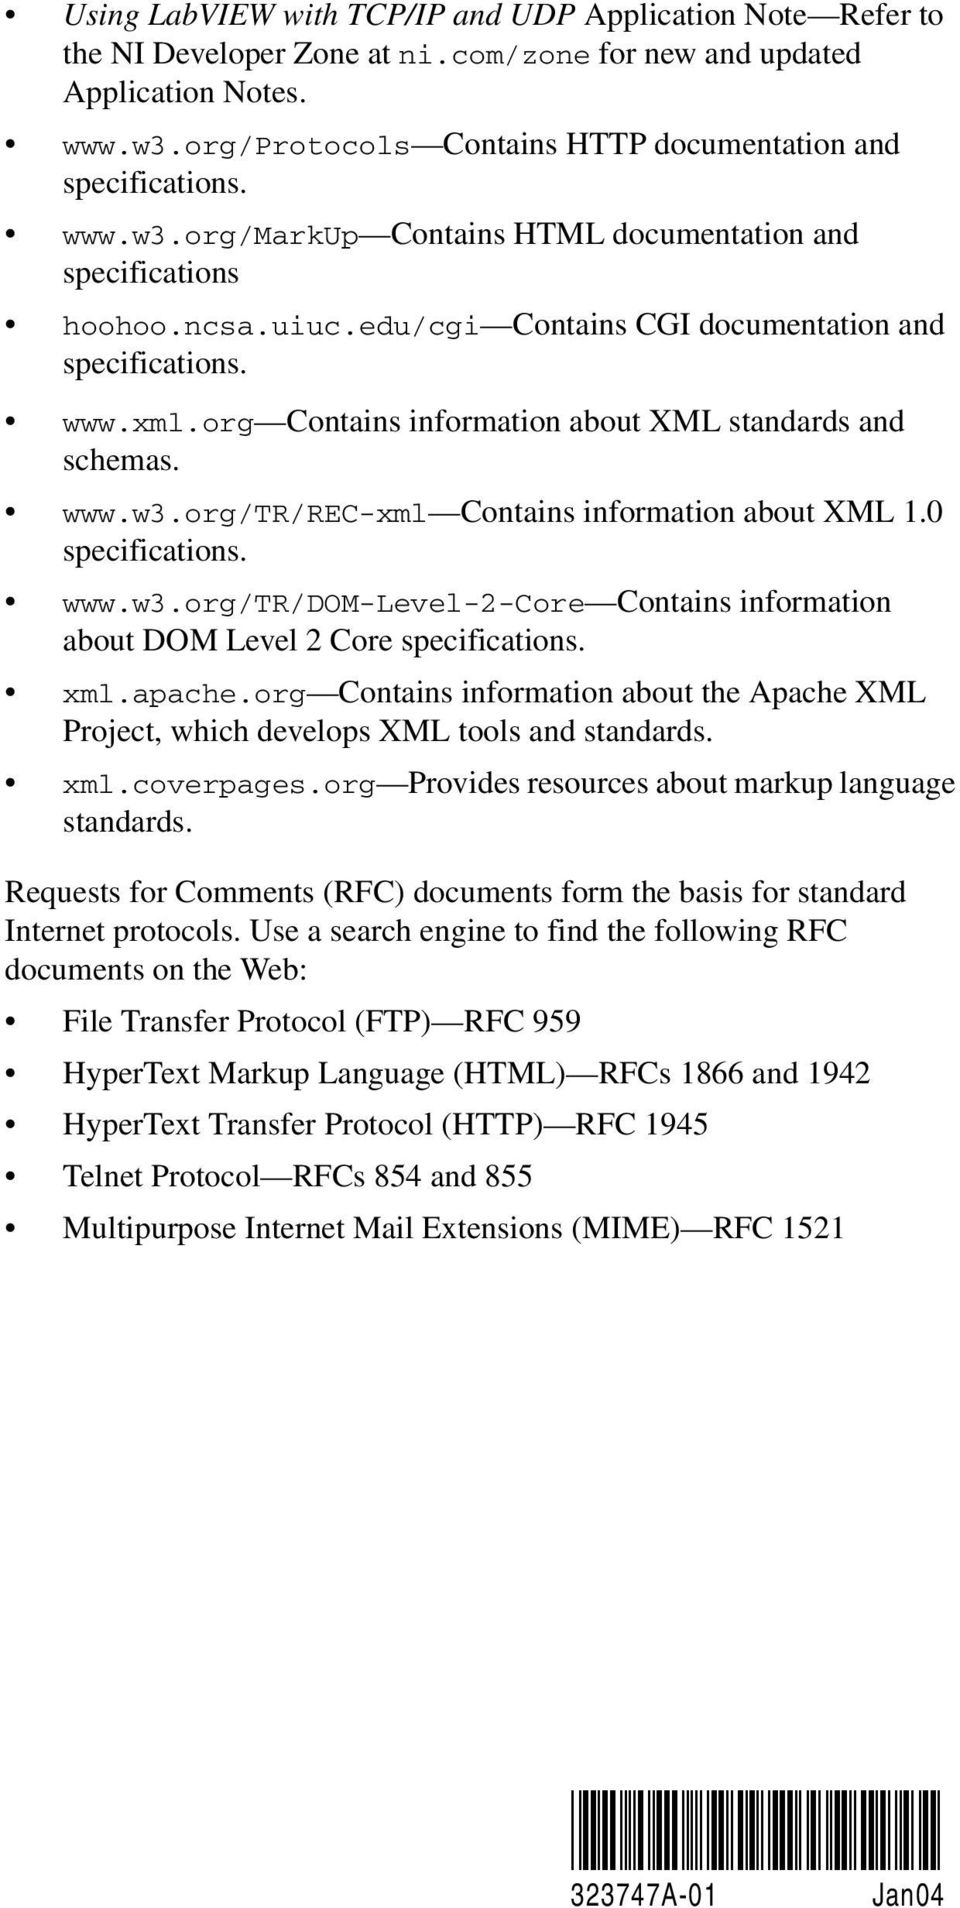 www.xml.org Contains information about XML standards and schemas. www.w3.org/tr/rec-xml Contains information about XML 1.0 specifications. www.w3.org/tr/dom-level-2-core Contains information about DOM Level 2 Core specifications.